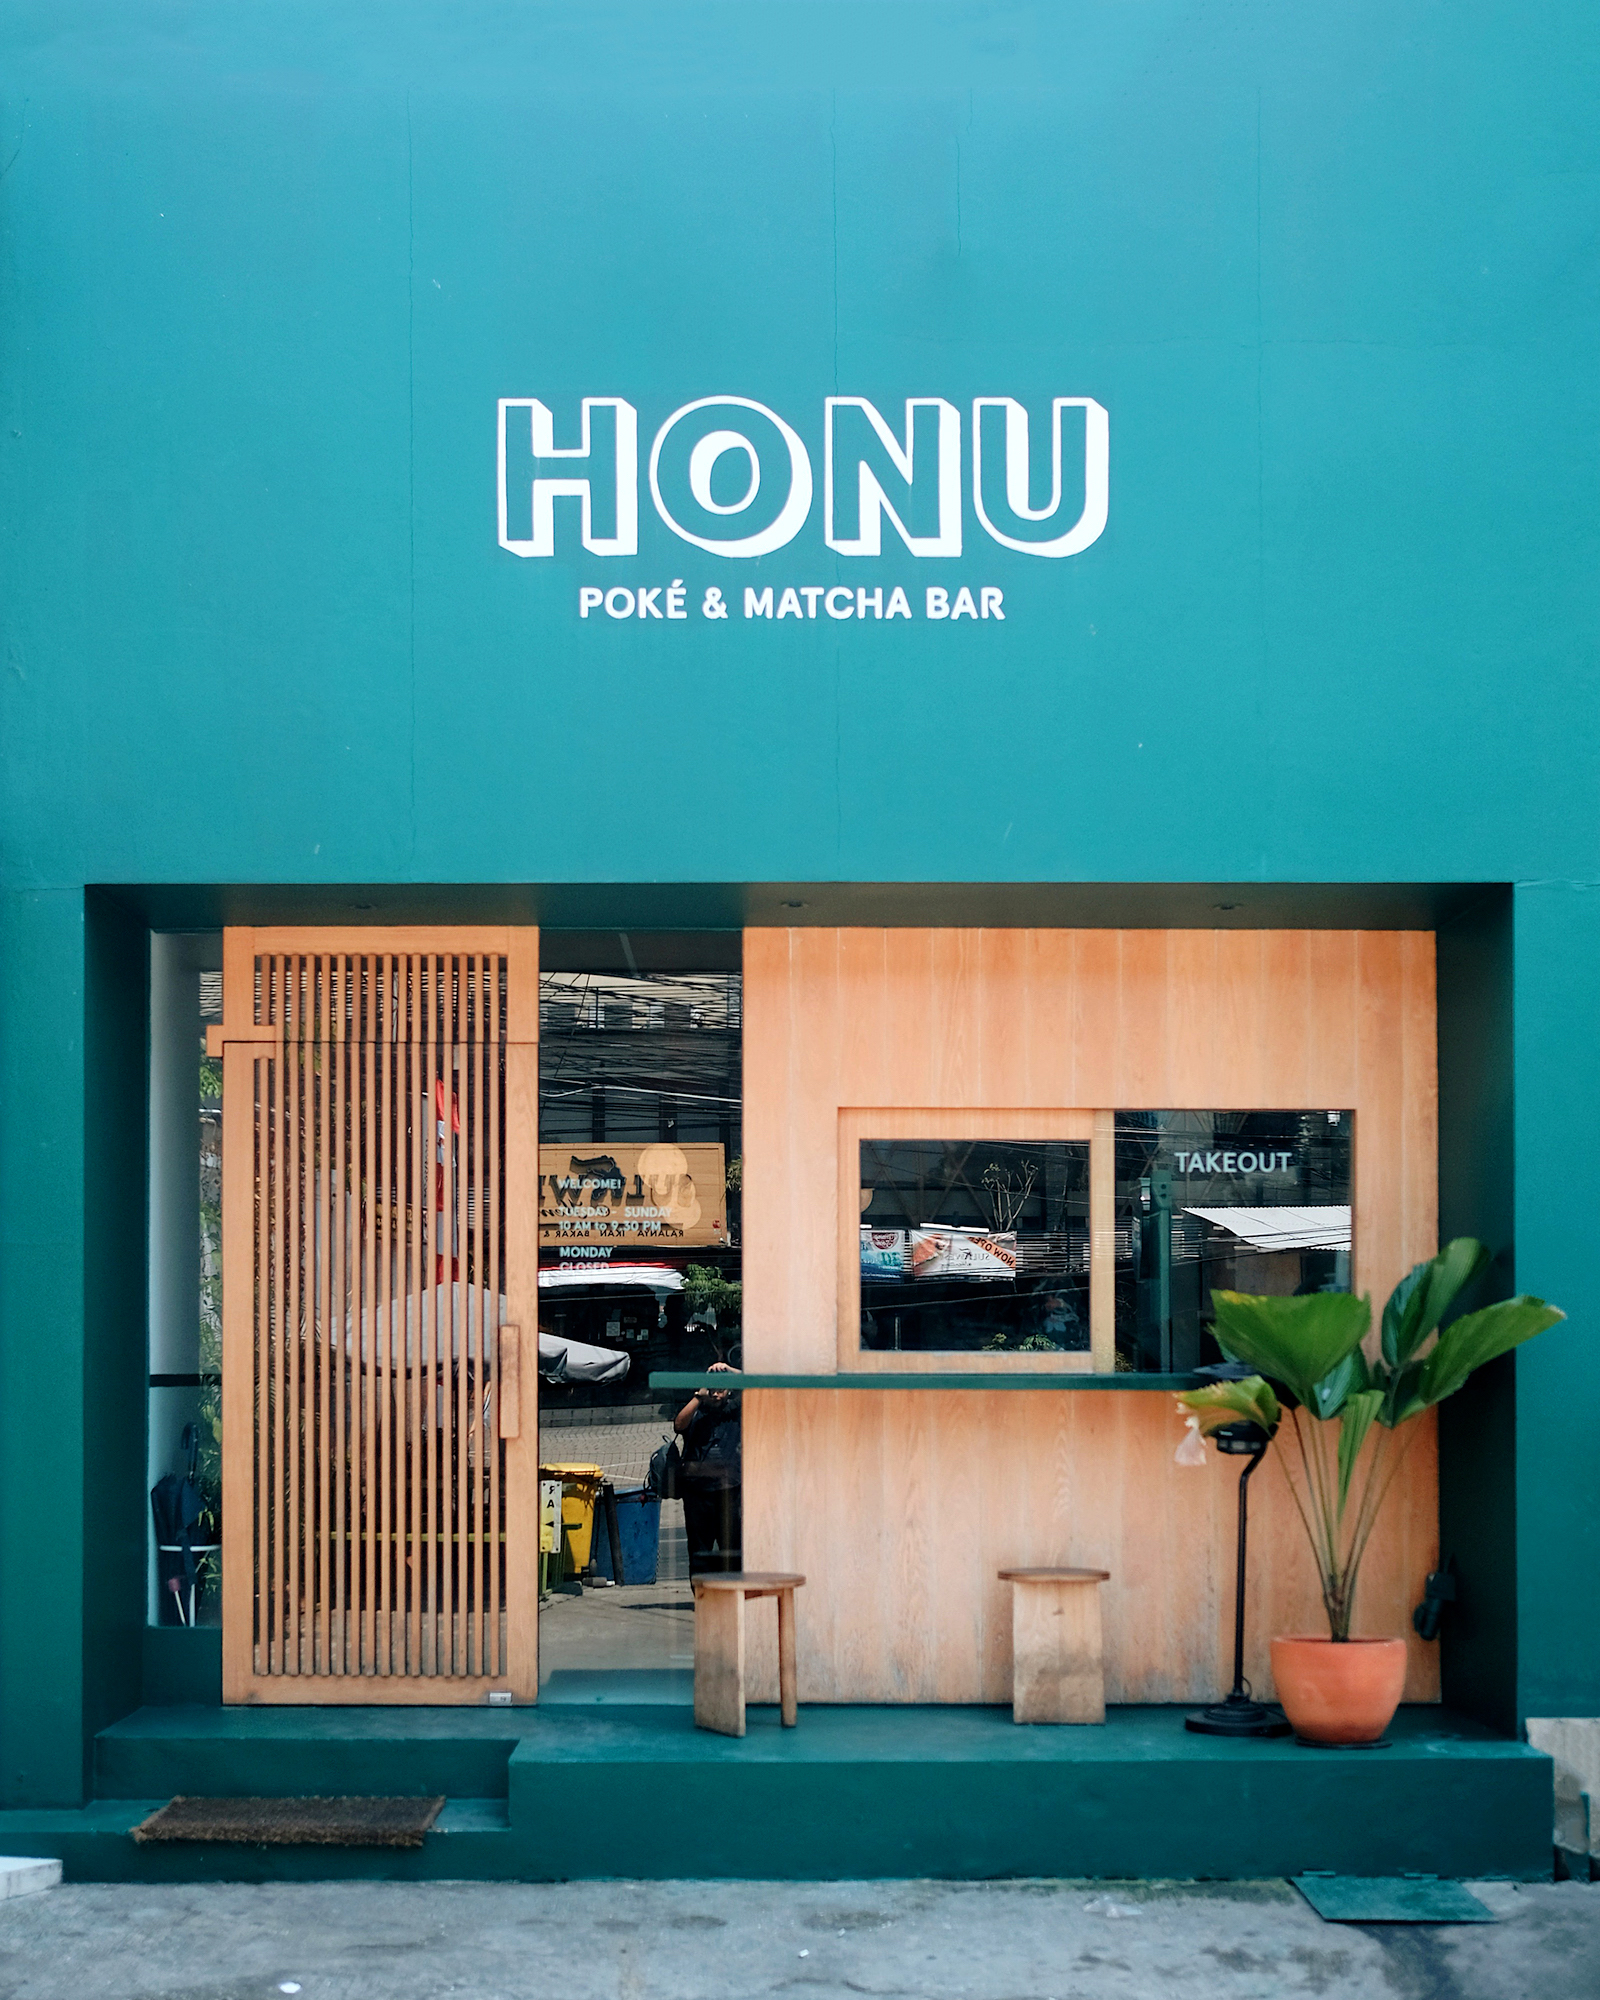 Hawaii x Japan : Honu Poke & Matcha Bar, Kemang